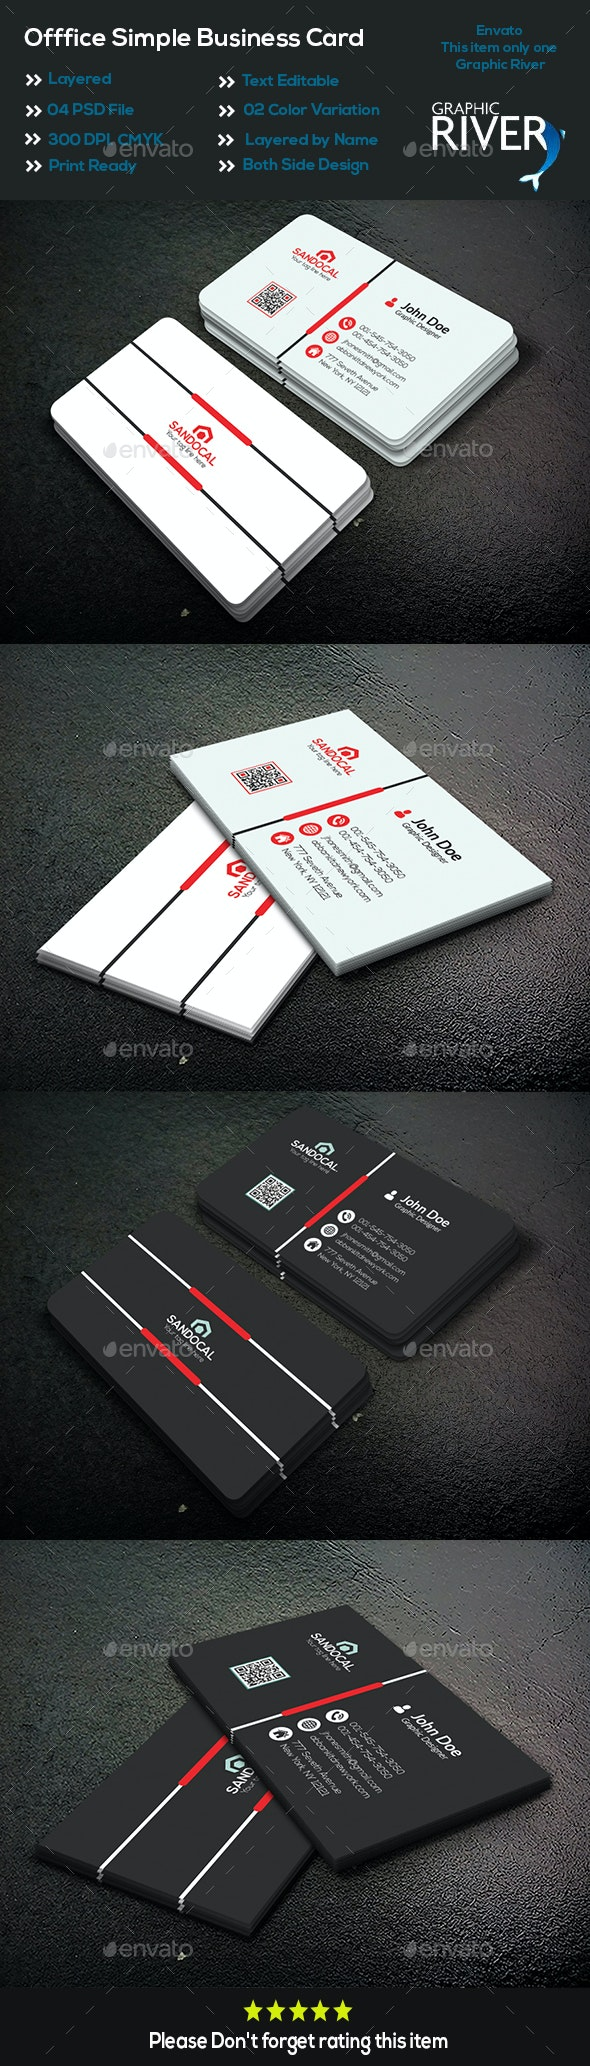 Office Simple Business Card - Business Cards Print Templates